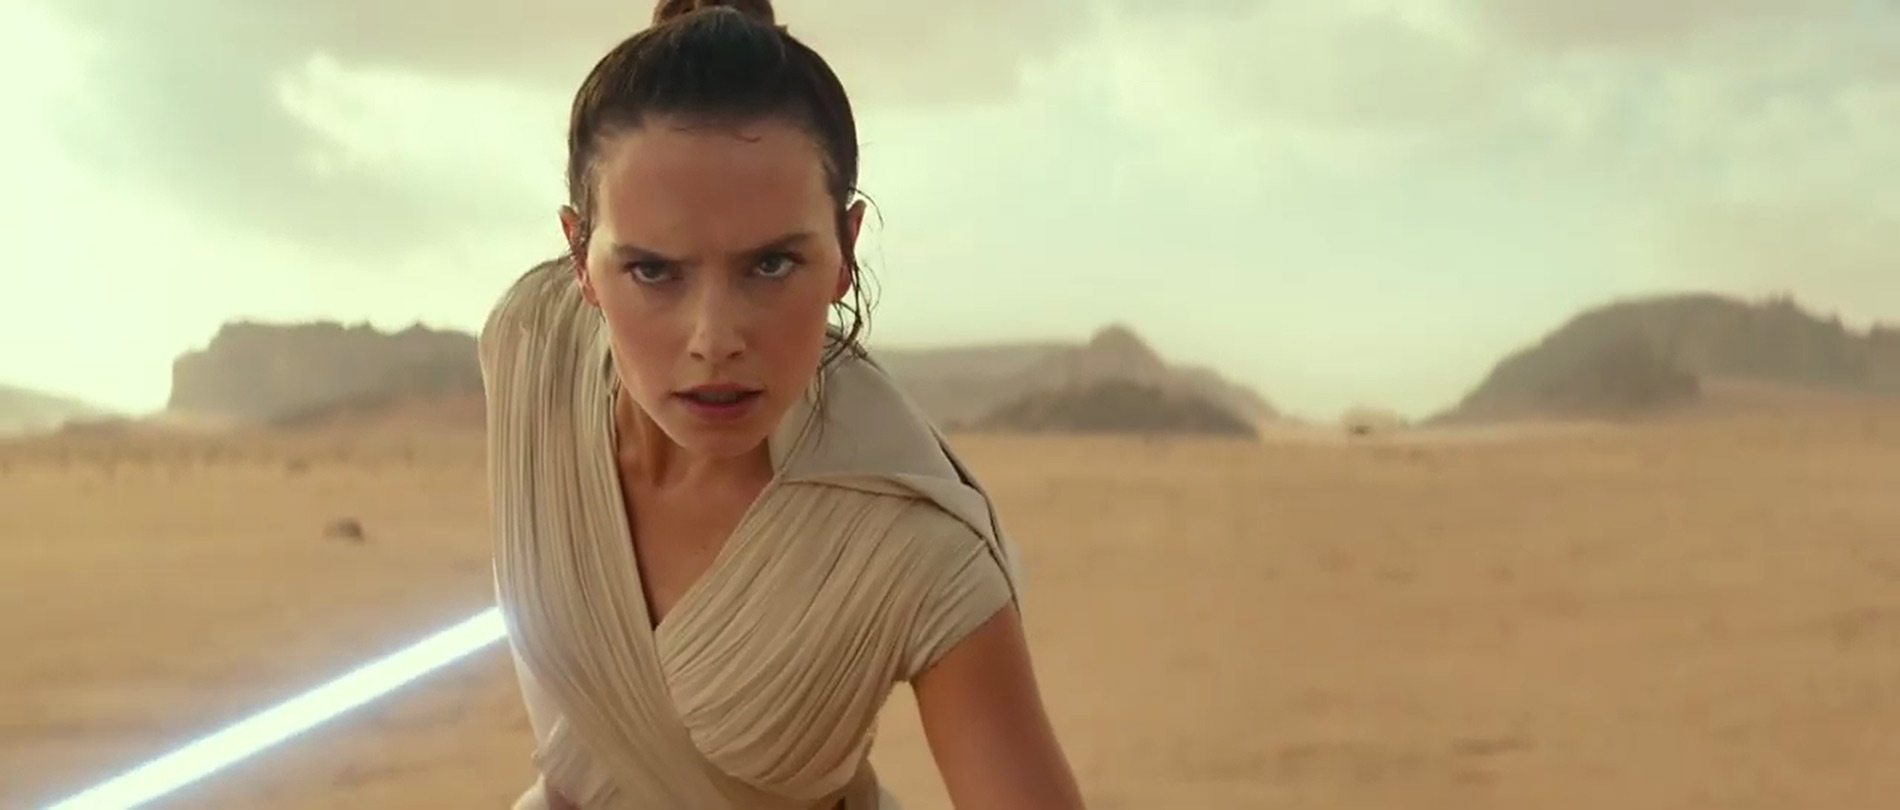 Star Wars: The Rise of Skywalker Trailer Revealed